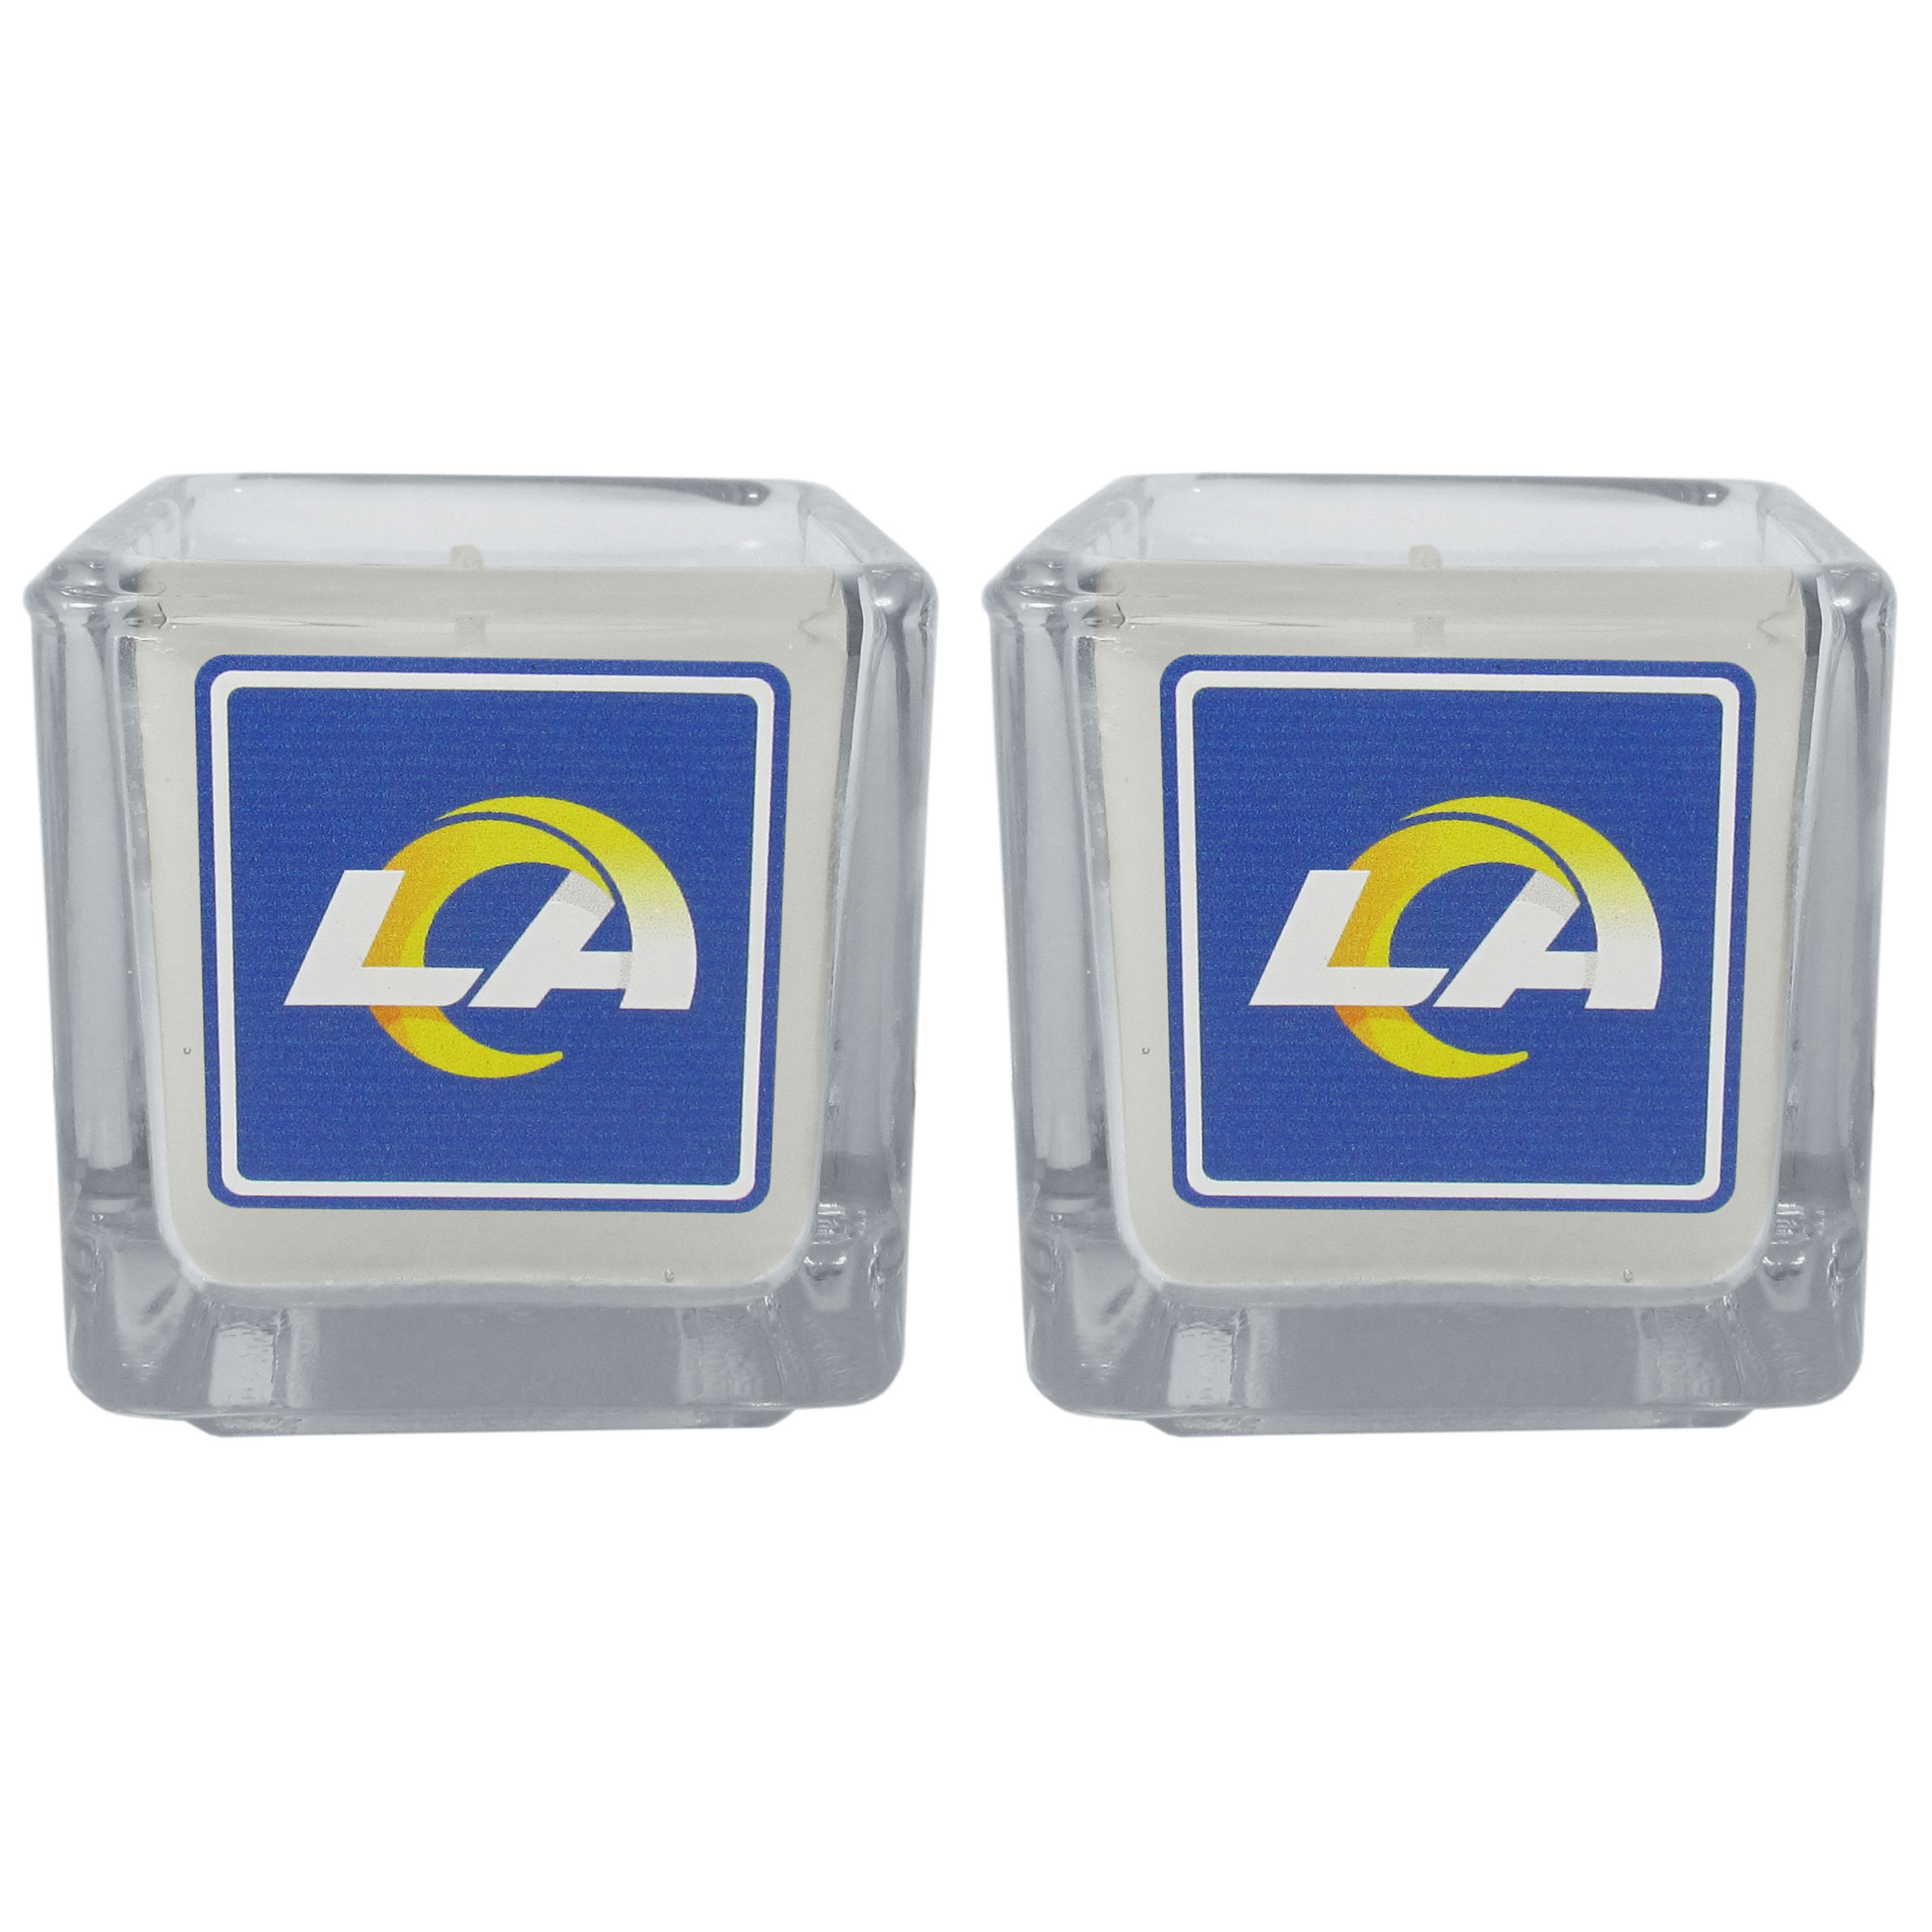 Los Angeles Rams Graphics Candle Set - Our candle set features 2 lightly vanilla scented candles with the Los Angeles Rams logo expertly printed on front. The candles are 2 inches tall in the votive style.